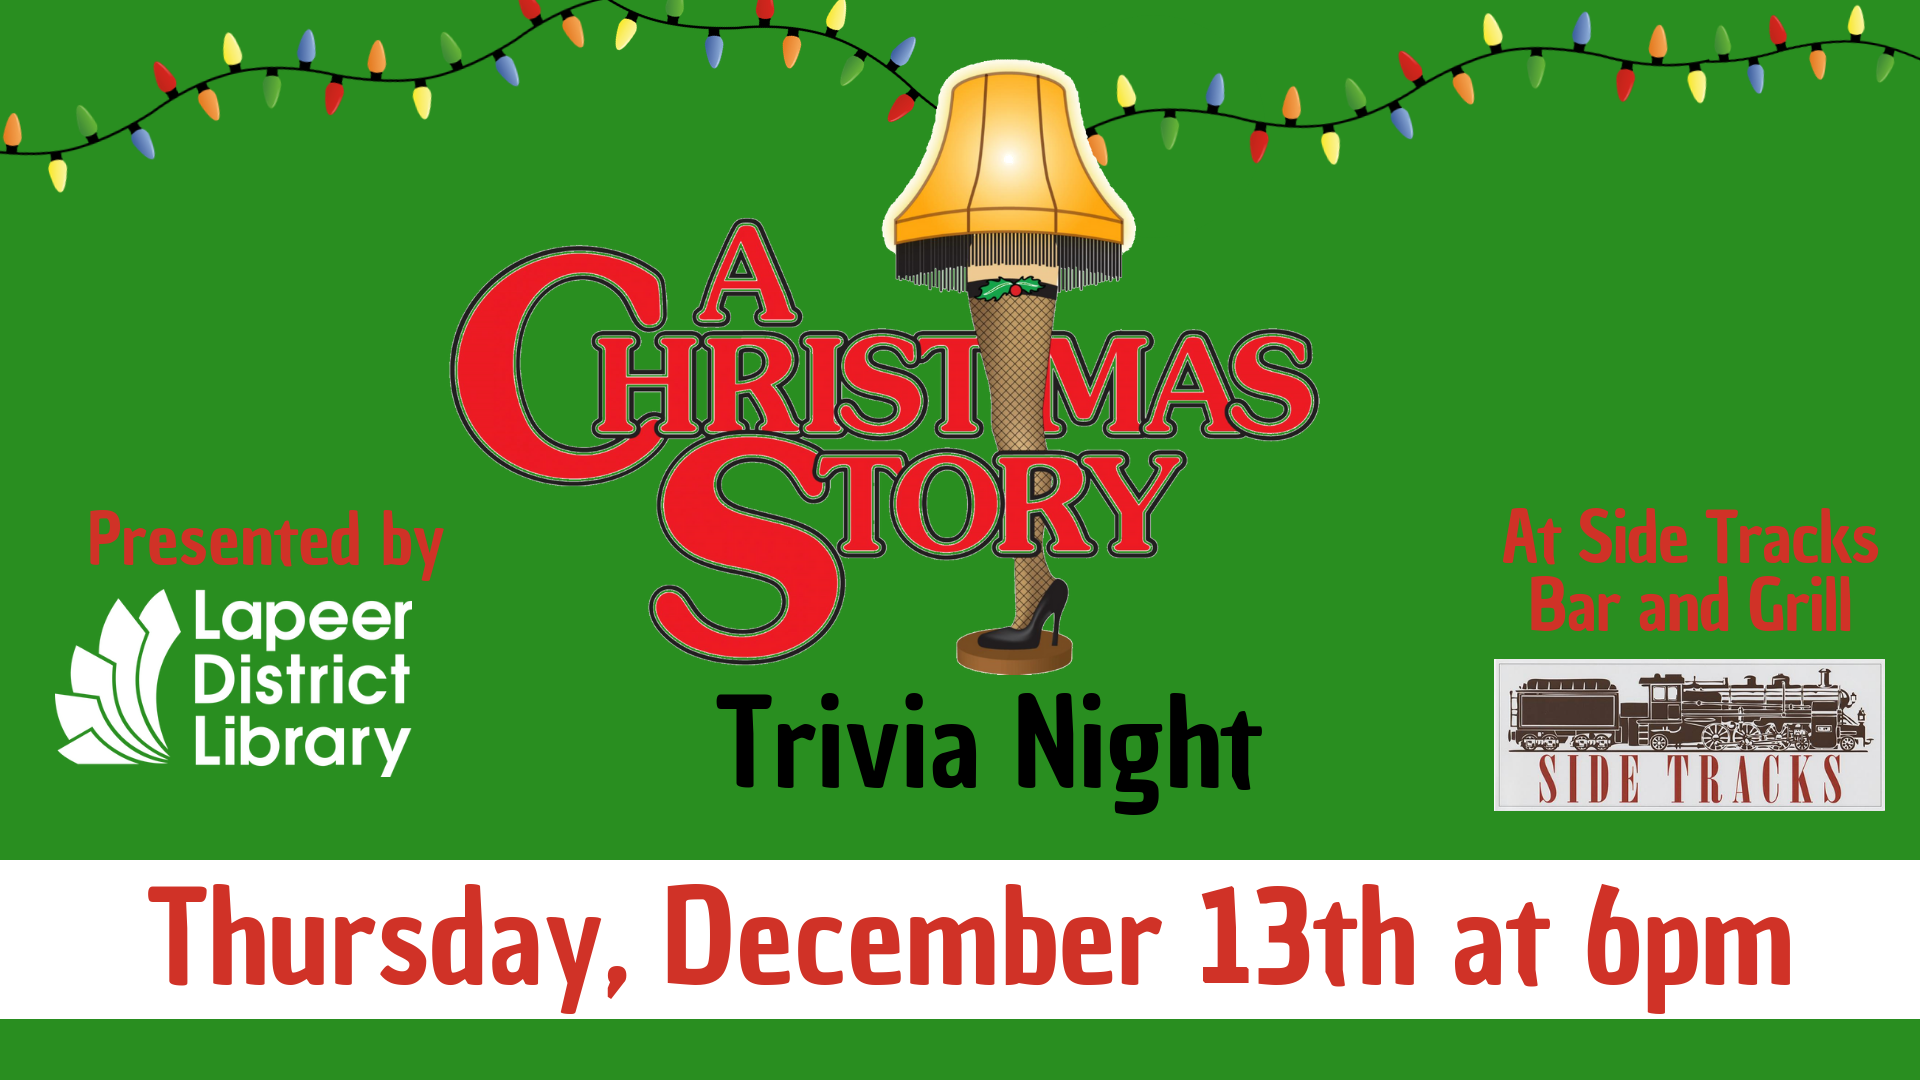 A Christmas Story Trivia at Side Tracks Bar & Grill